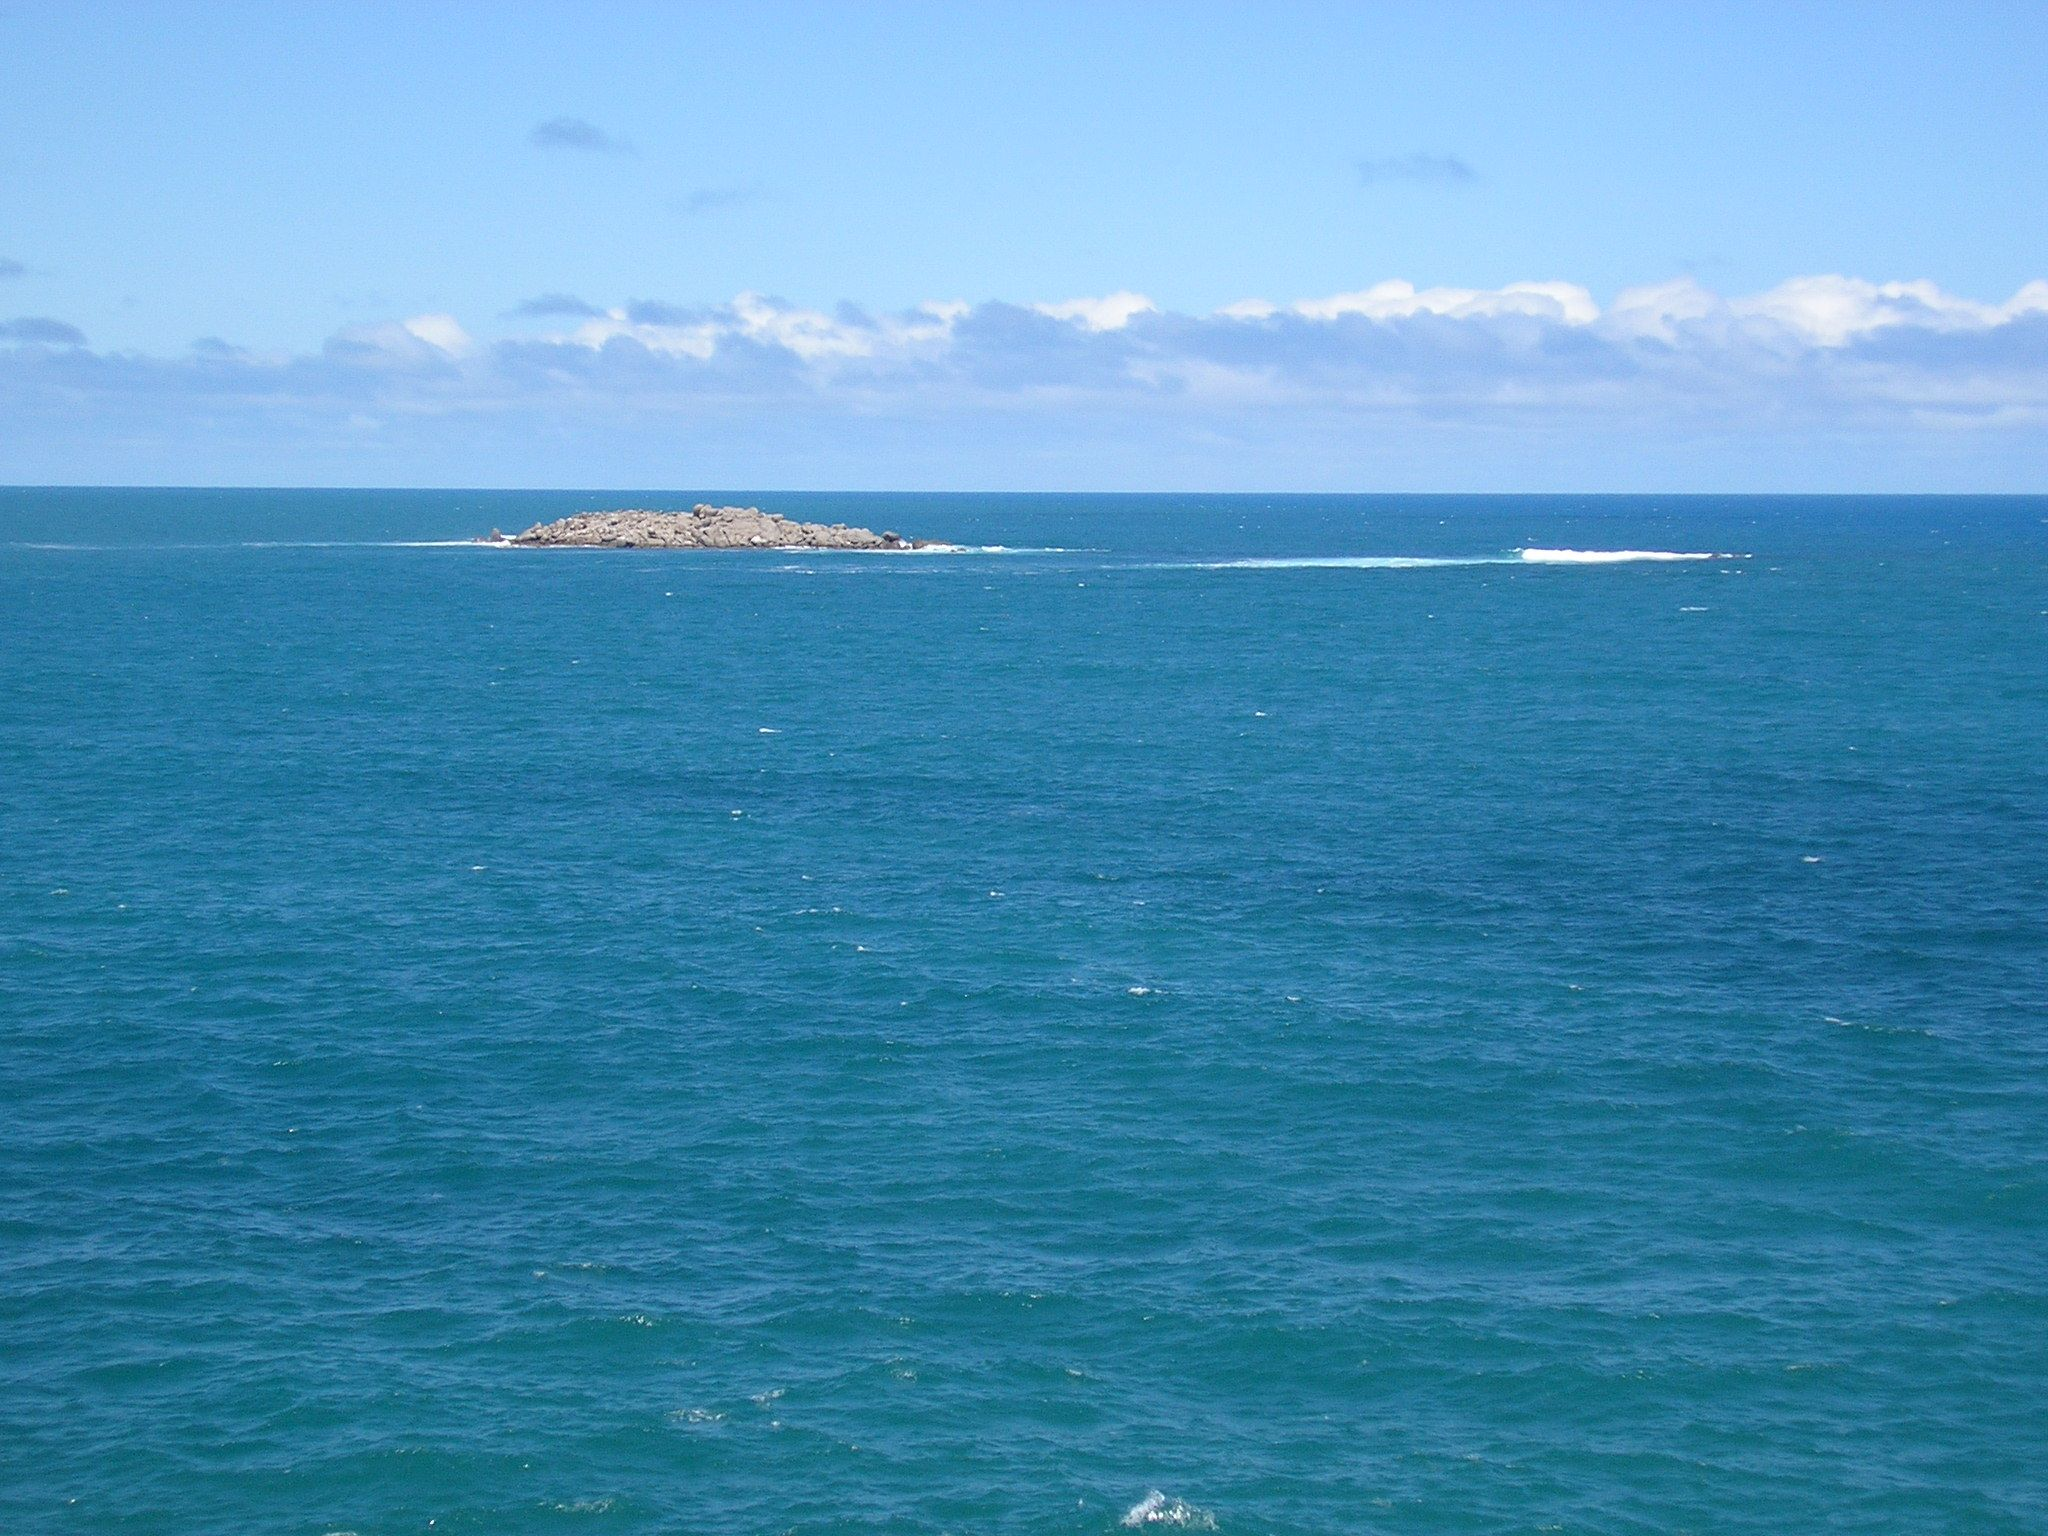 Seal Island from Granite Island, South Australia.